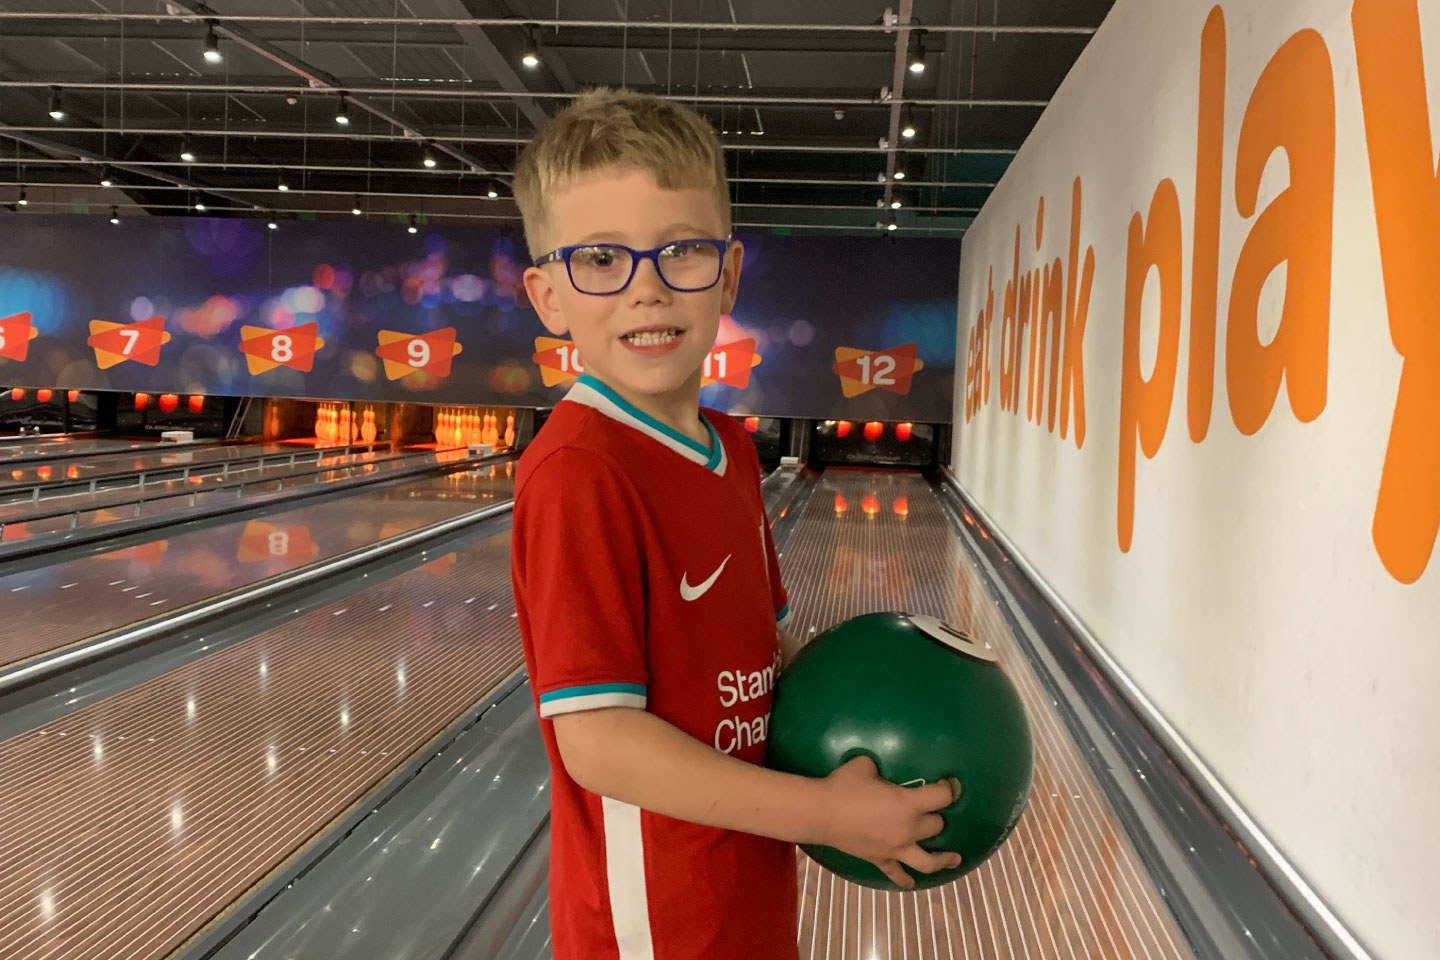 Little Boys Smiling and Holding Bowling Ball At Airtastic Craigavon